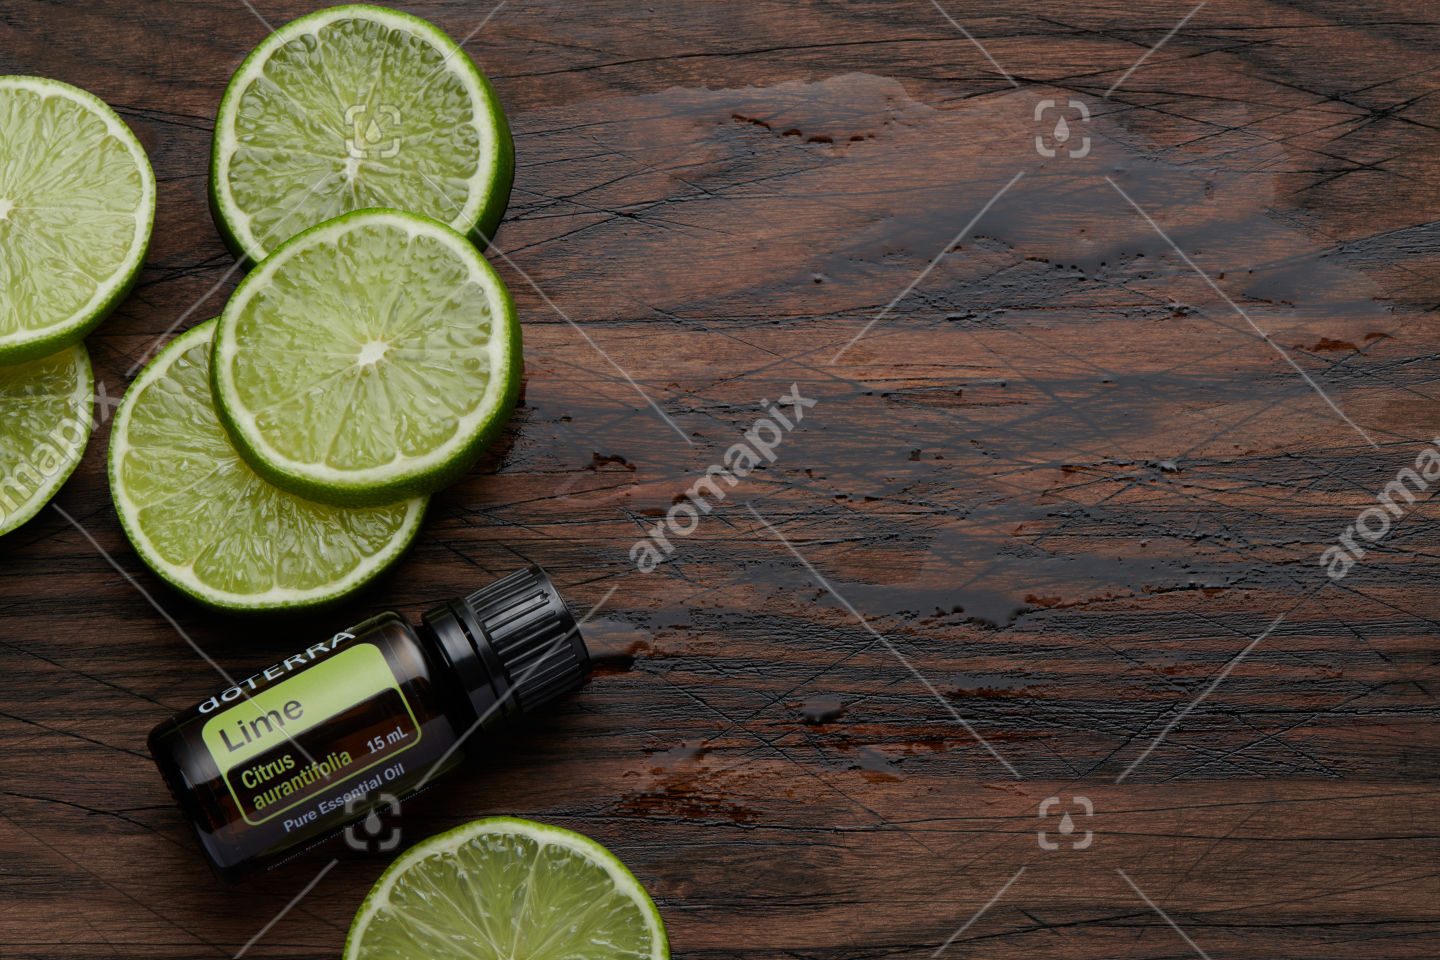 doTERRA Lime product and lime slices on wooden board